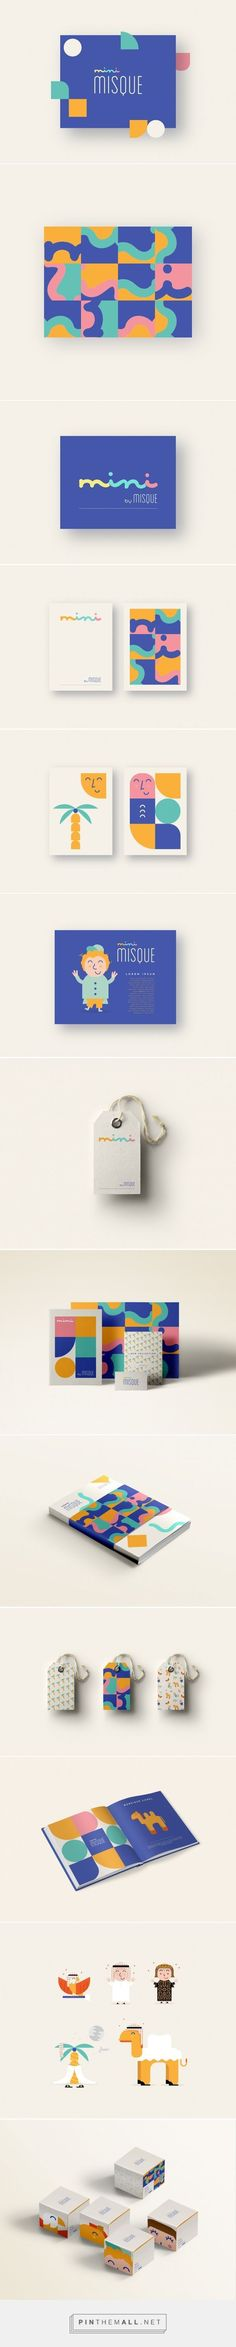 Branding | Graphic Design | Mini Misque Branding.